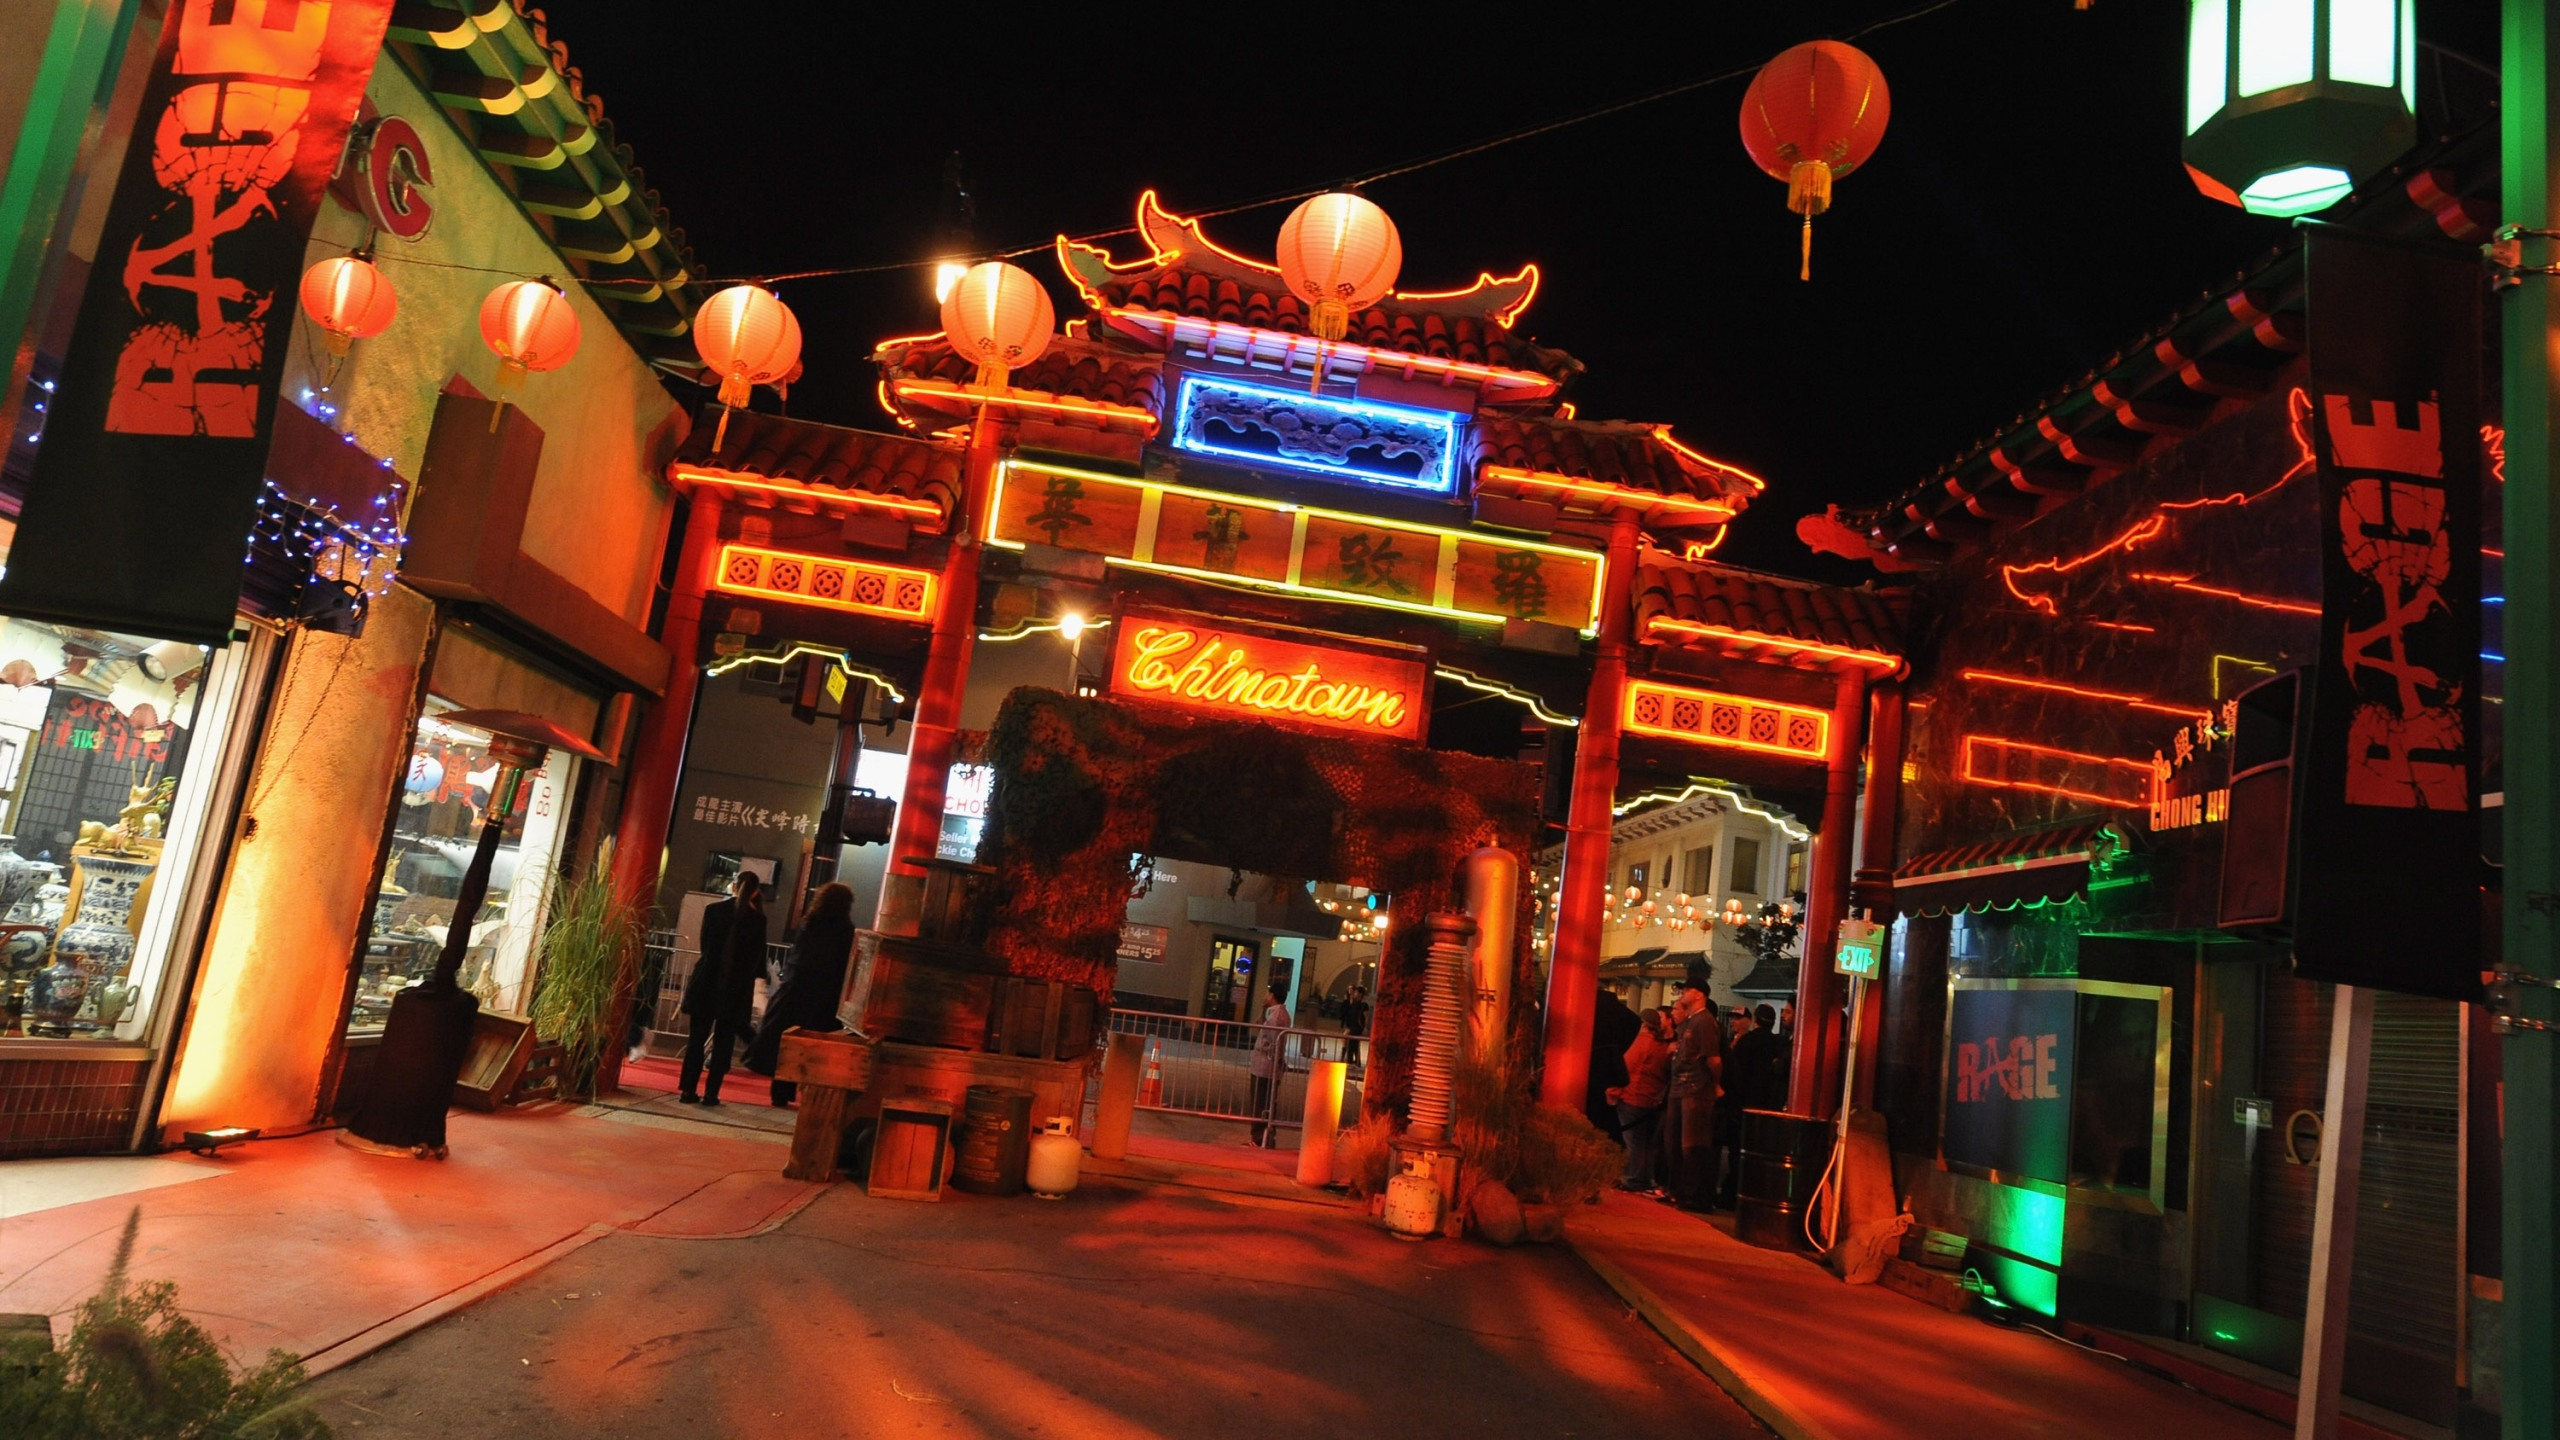 A general view of an area of Chinatown's Historical Central Plaza on Sept. 30, 2011, in Los Angeles. (Credit: Jordan Strauss/Getty Images for Bethesda Softworks)